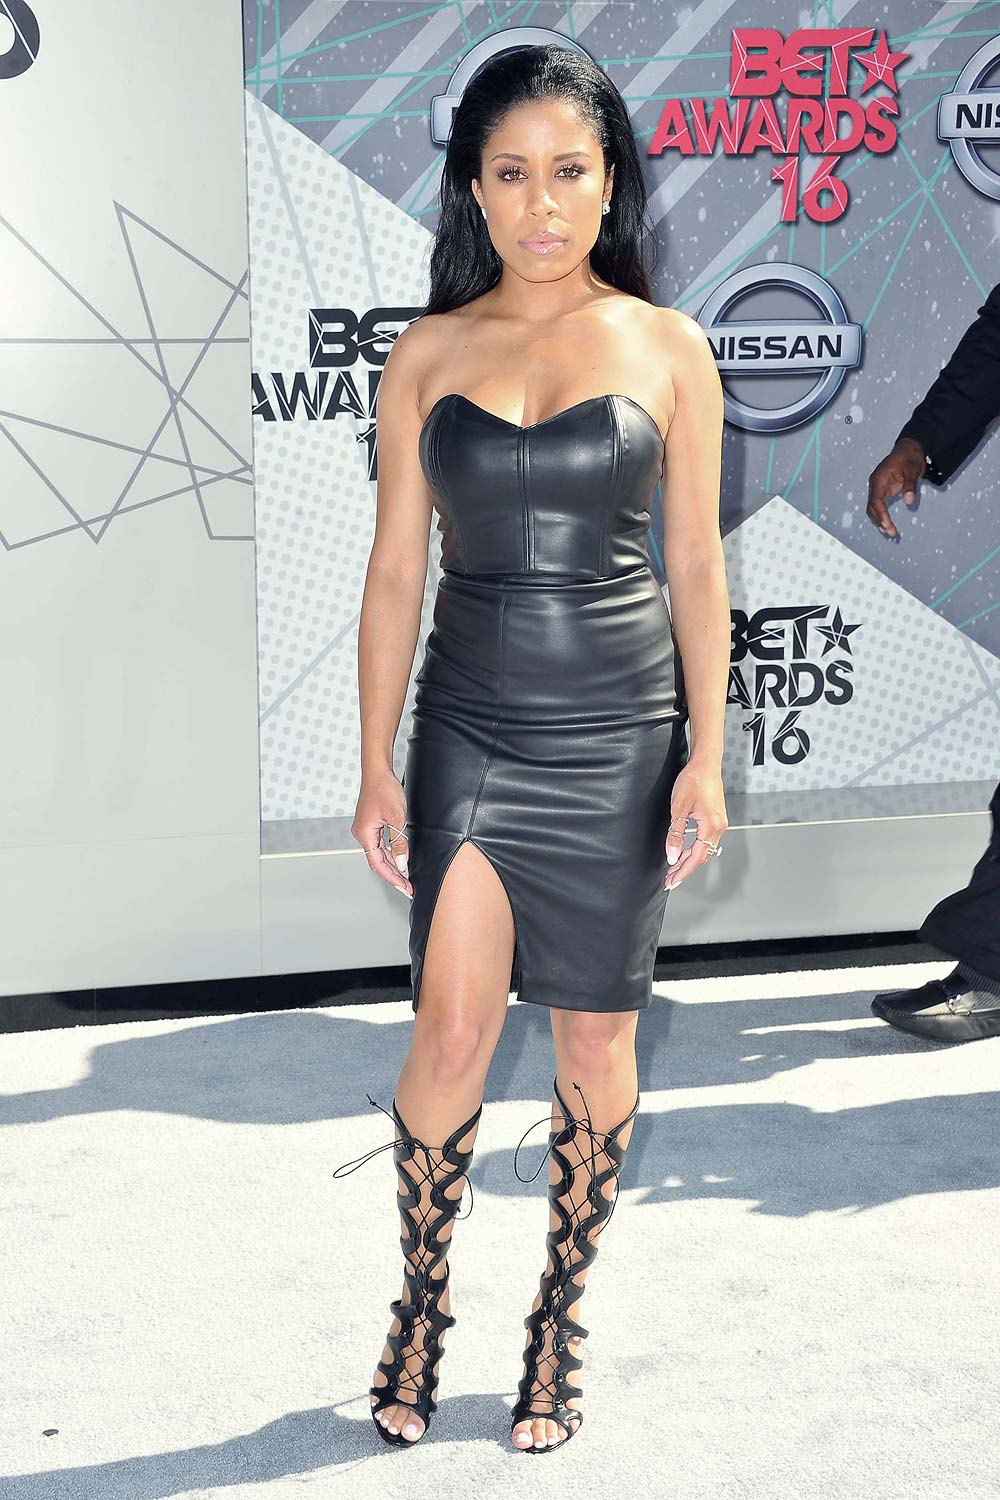 Keshia chante attends the 2016 bet awards leather celebrities